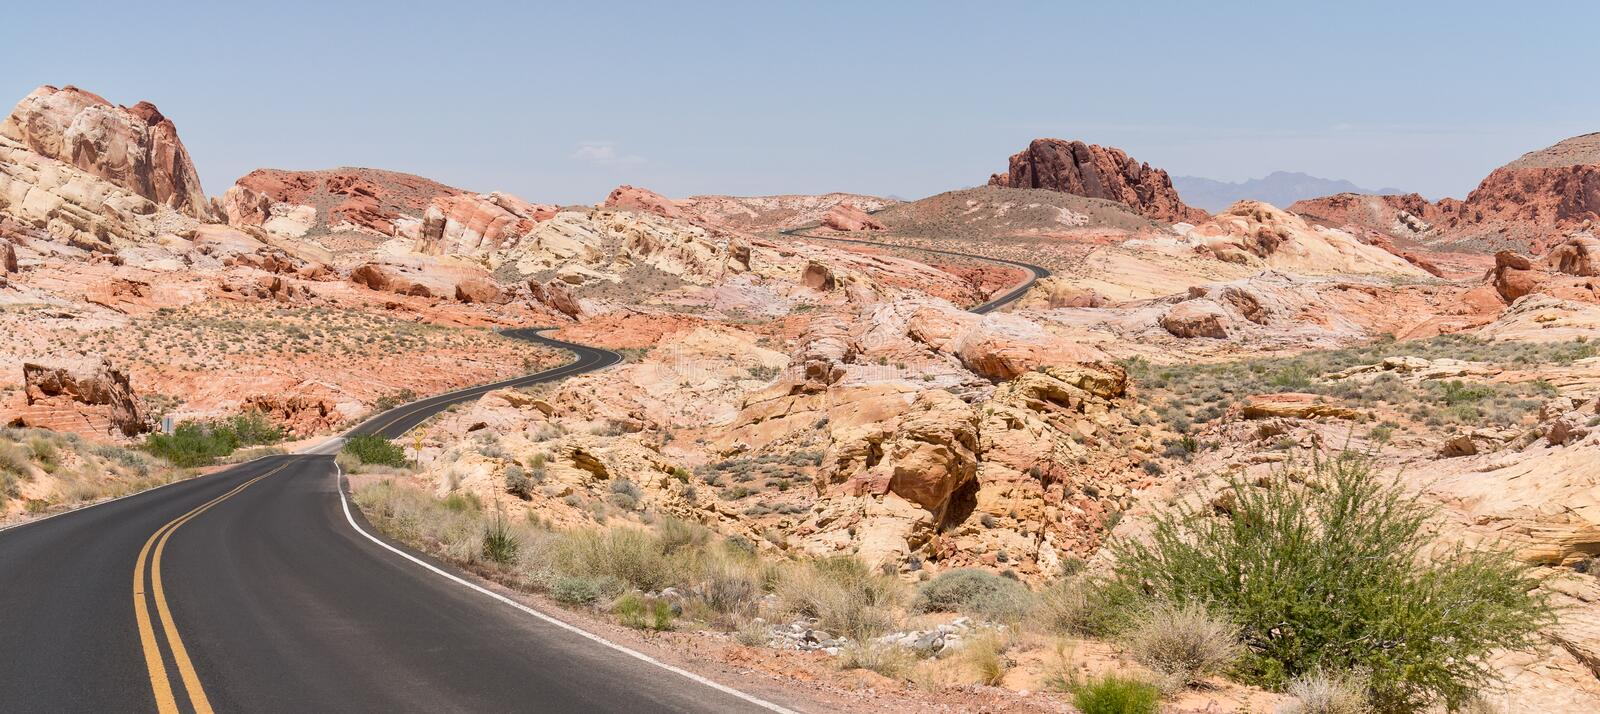 Valley of Fire State Park, Nevada. The road through the colorful landscape at Valley of Fire State Park, Nevada royalty free stock photo